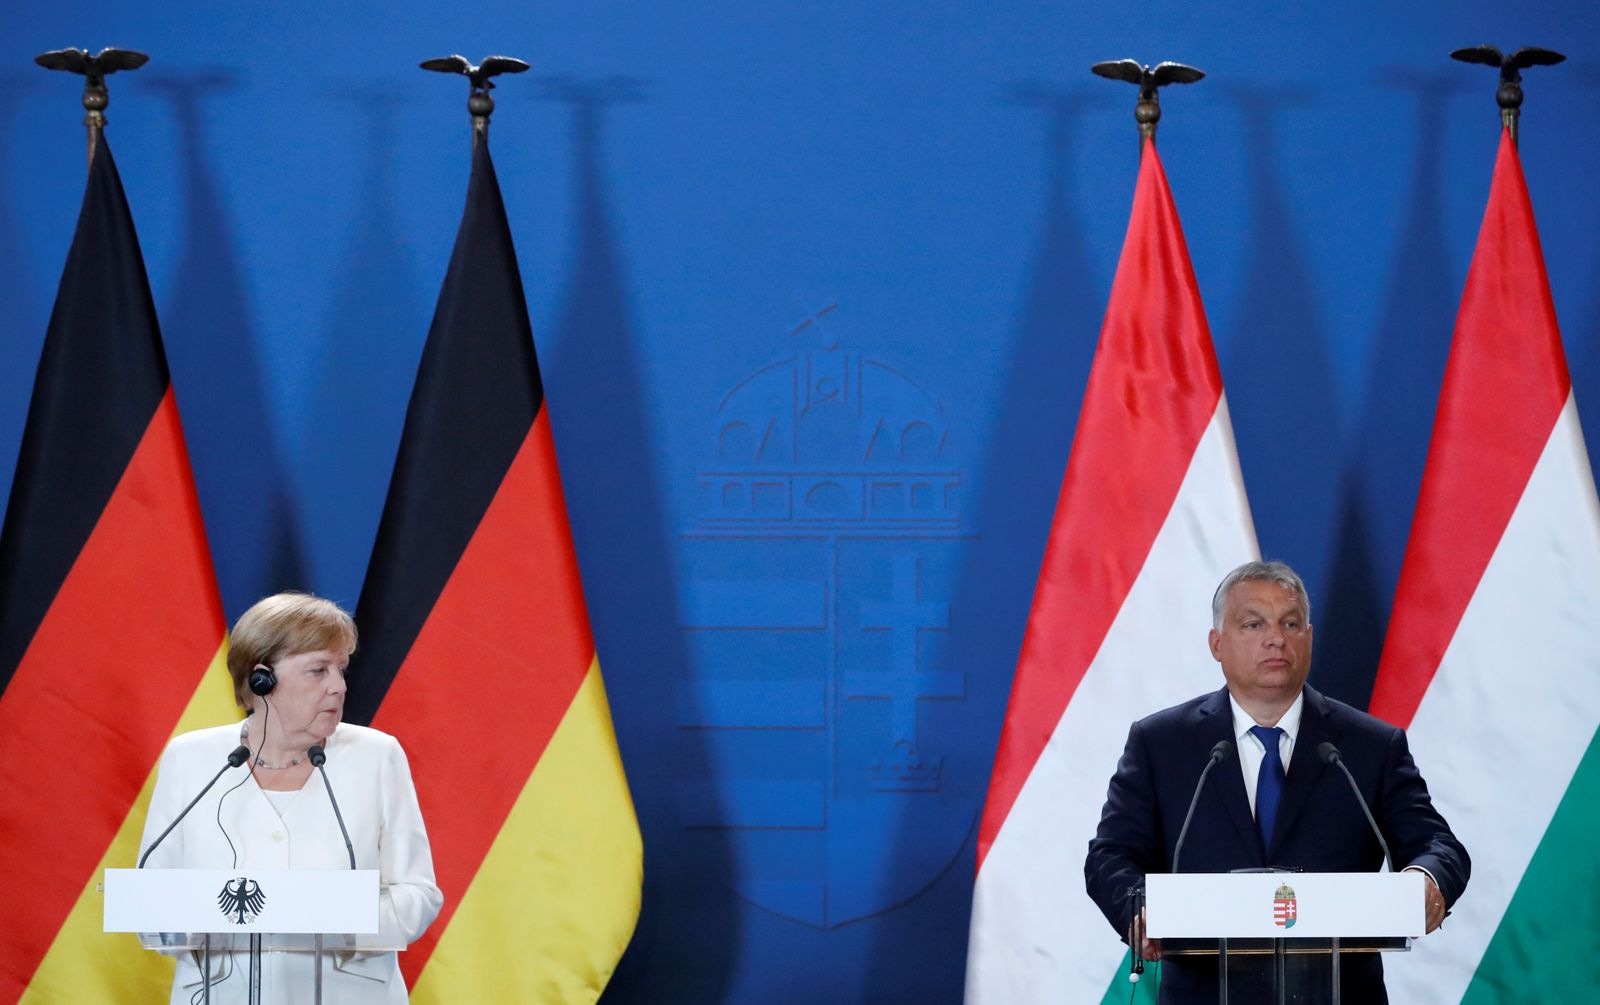 German Chancellor Merkel and Hungarian PM Orban hold a news conference in Sopron